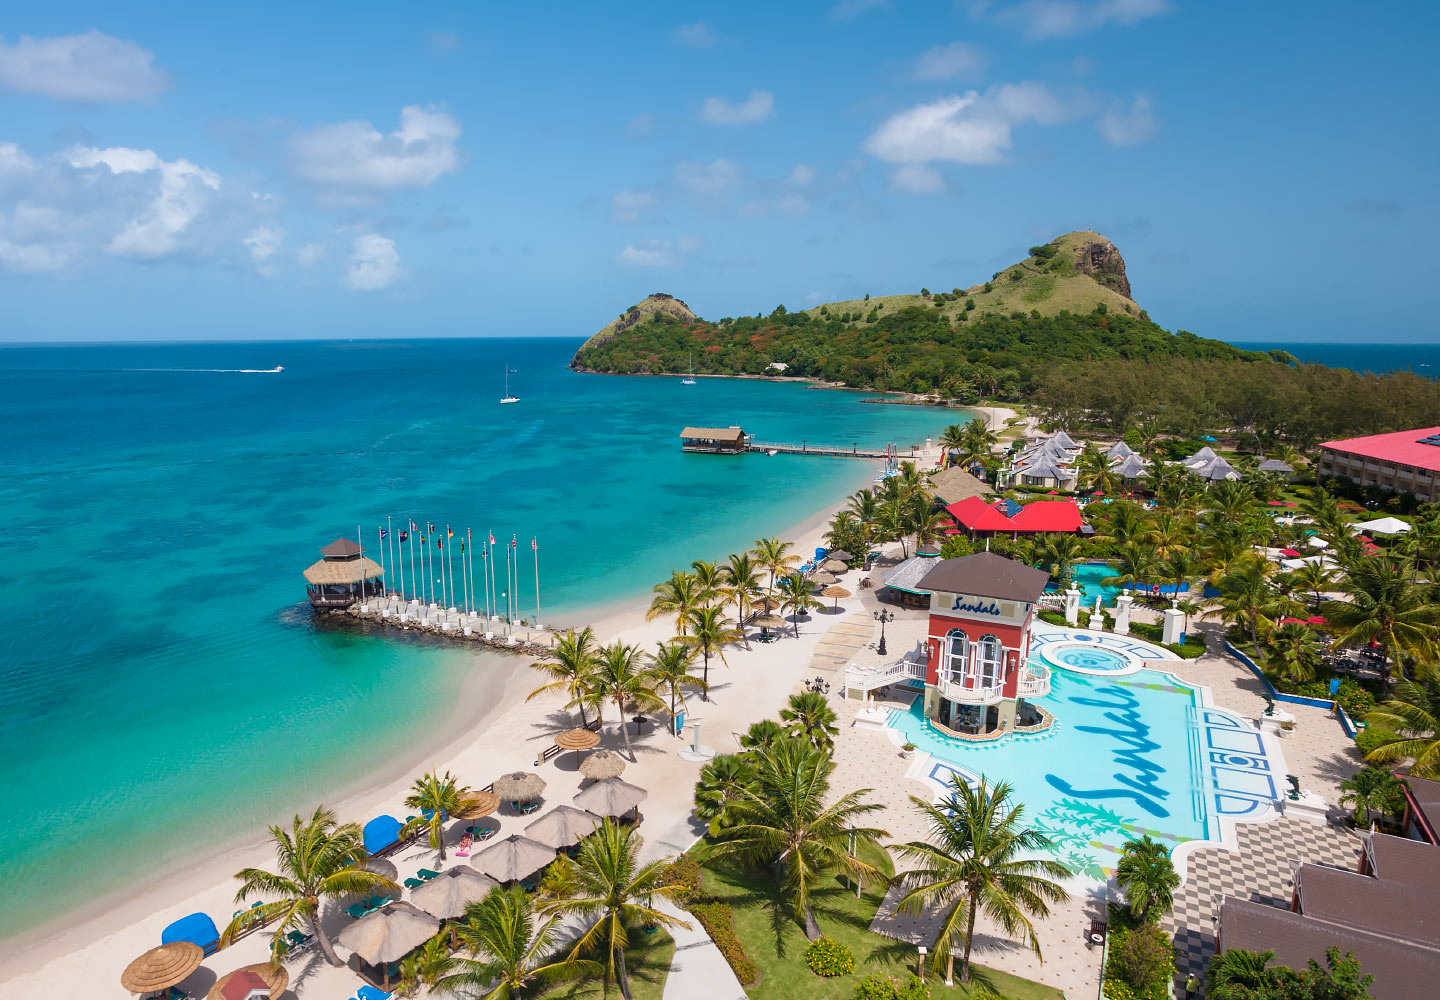 sandals honeymoon, grande st lucian